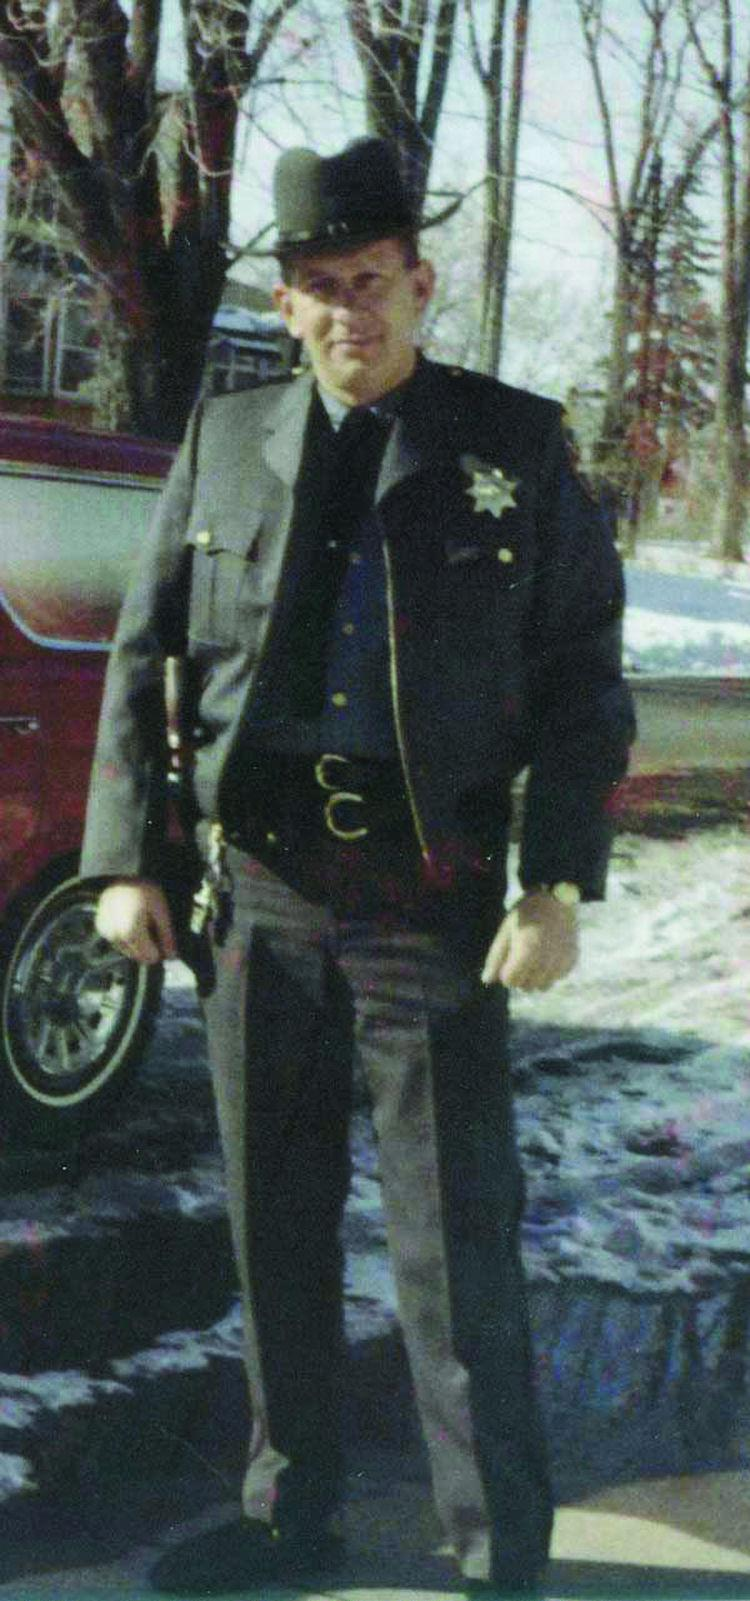 Sergeant Investigator Carl L. Clingerman | Wayne County Sheriff's Office, New York